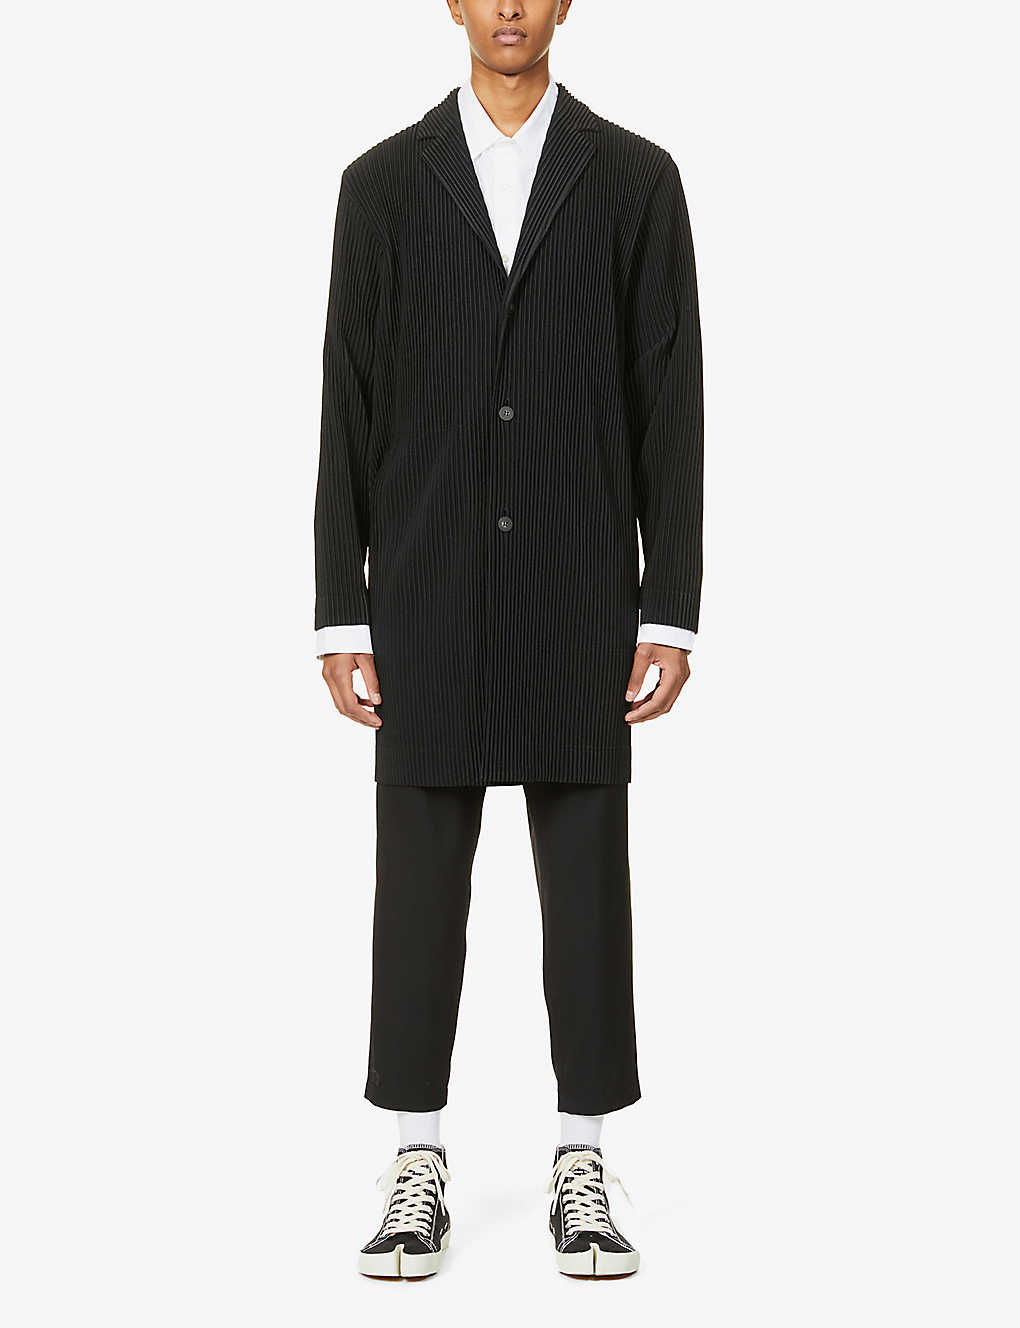 HOMME PLISSE ISSEY MIYAKE: Pleated notch-lapel woven coat